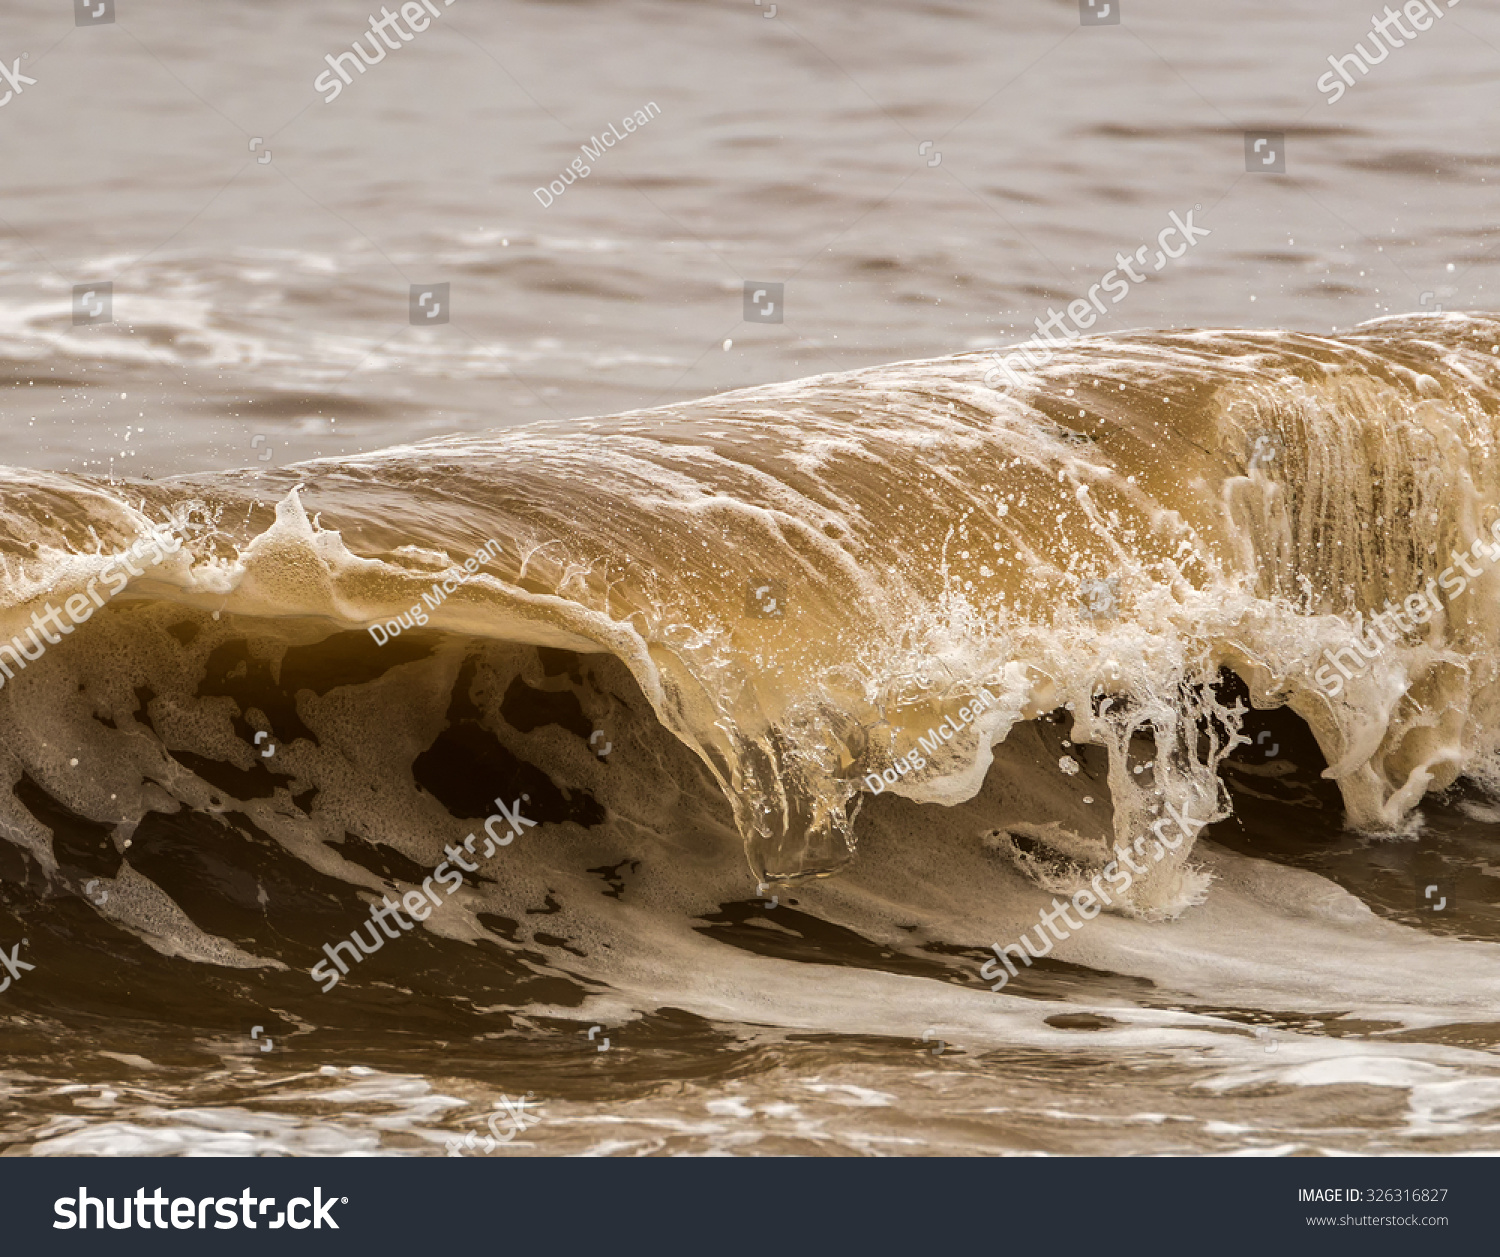 stock-photo-photo-of-small-breaking-wave